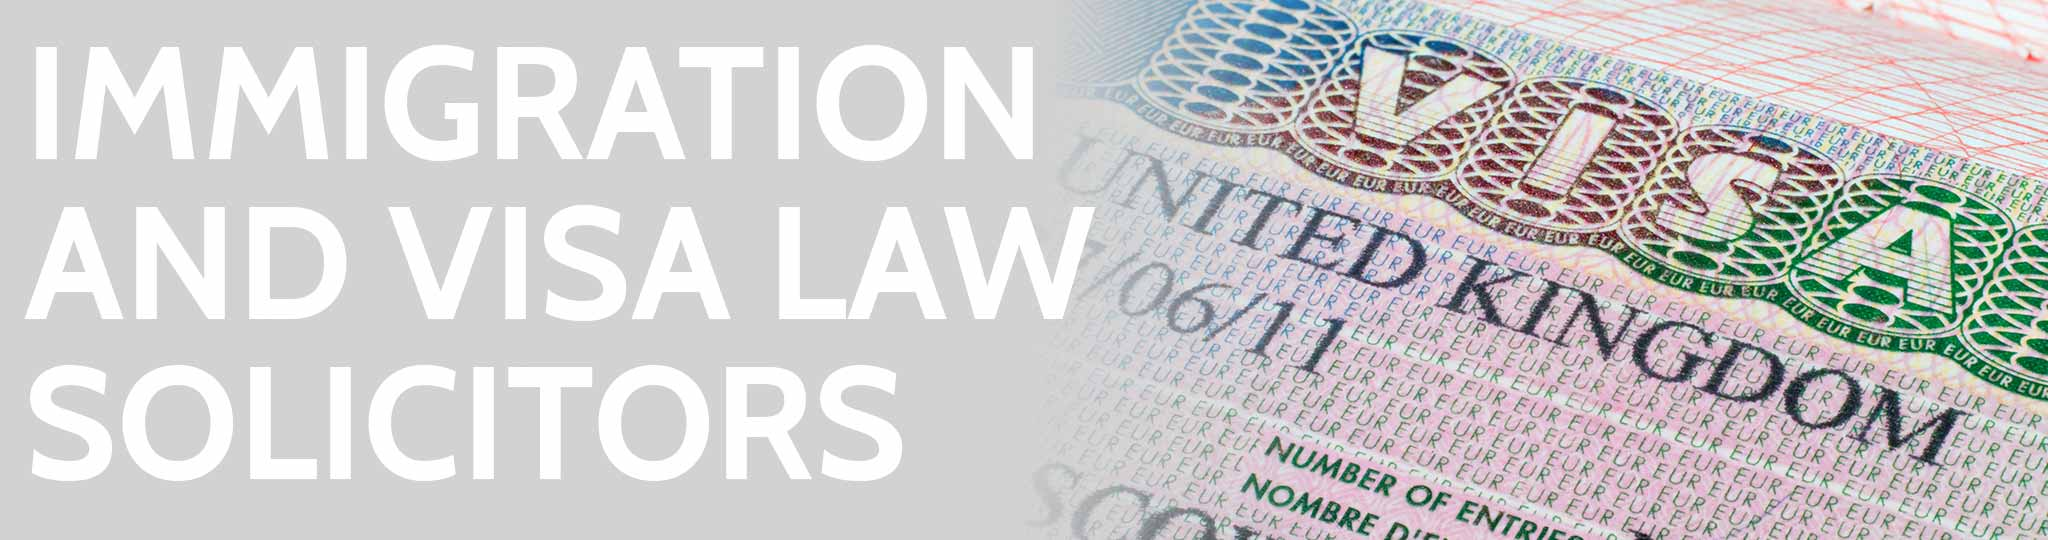 Immigration law solicitors